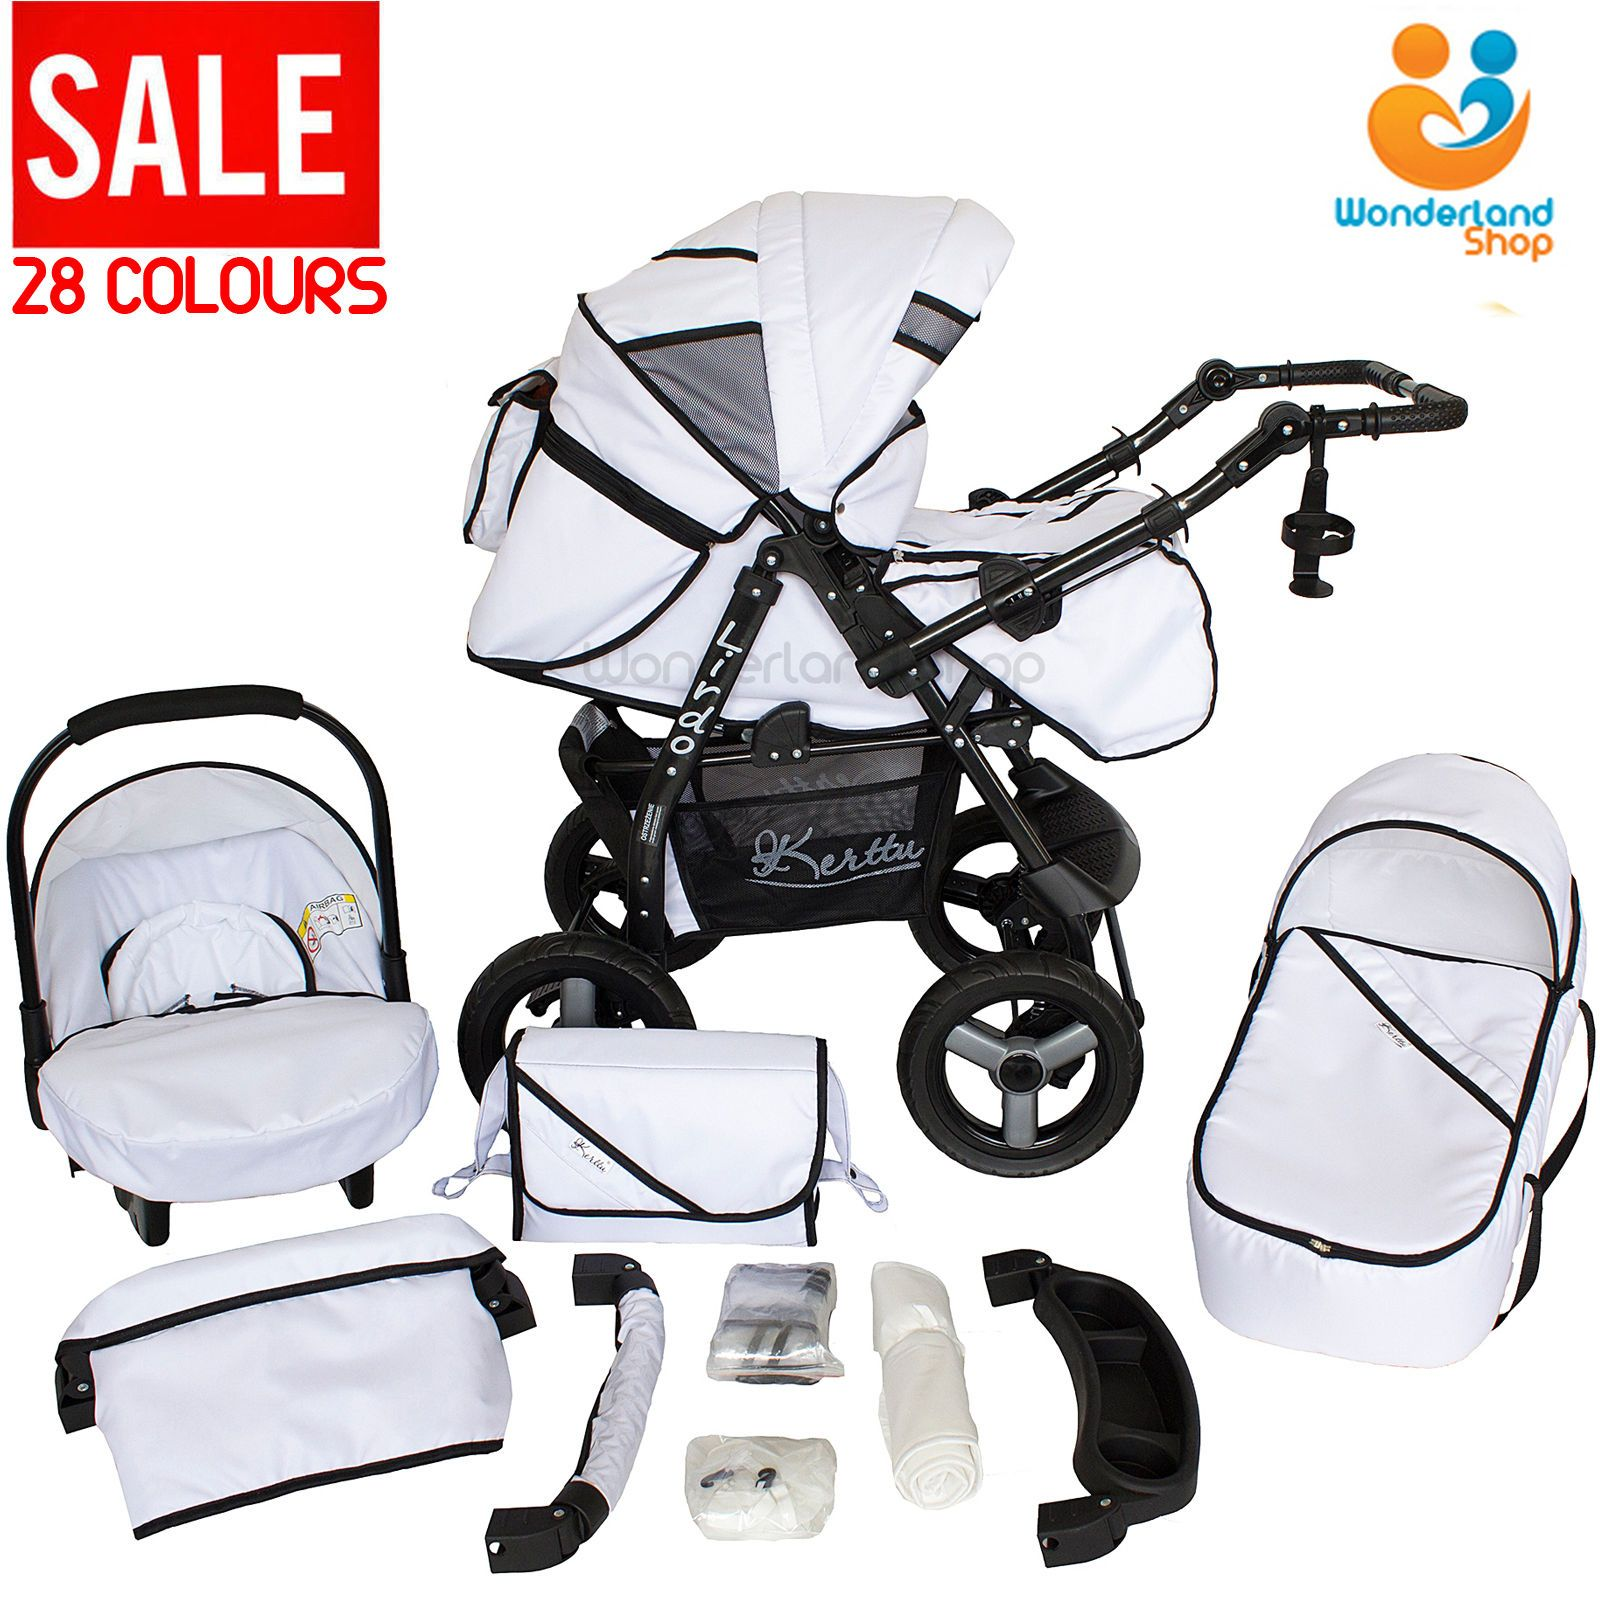 Baby pram stroller pushchair car seat carrycot travel system buggy 28 colours